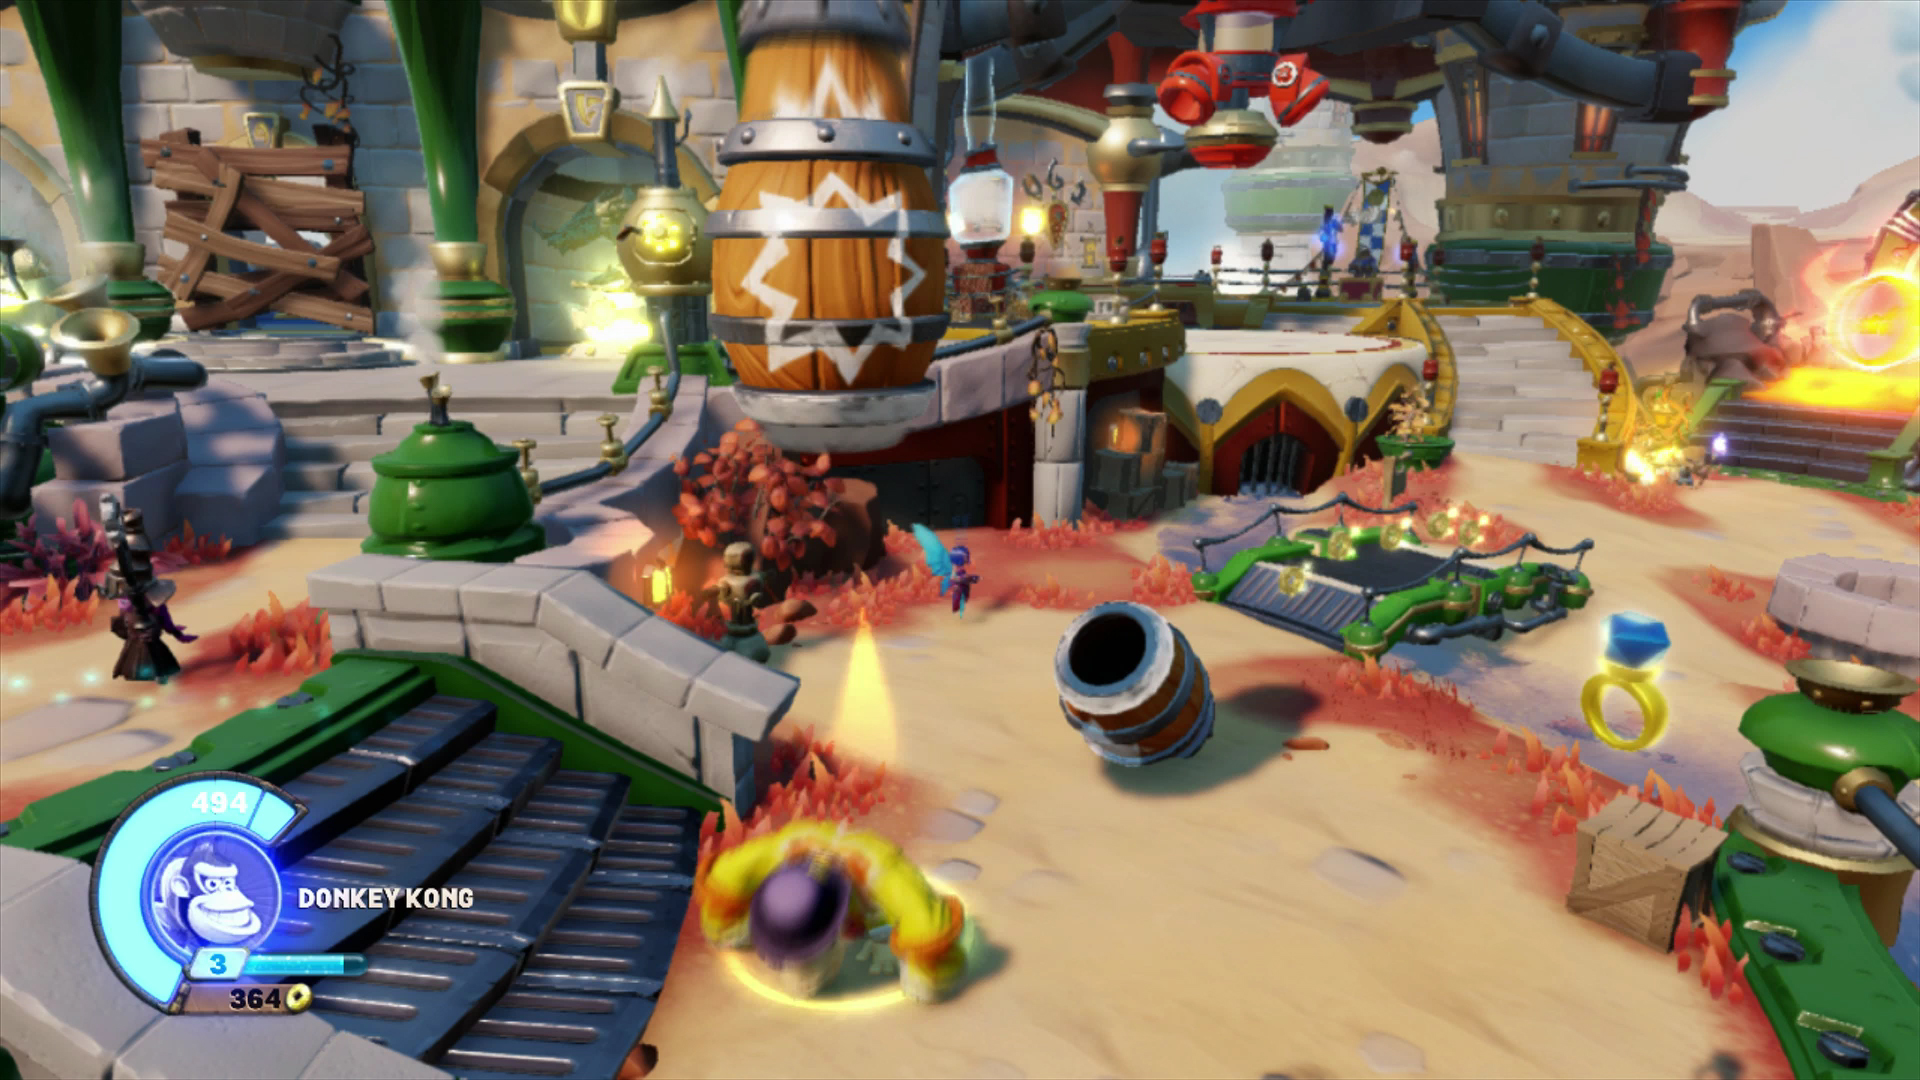 Skylanders SuperChargers Donkey Kong Barrel ability